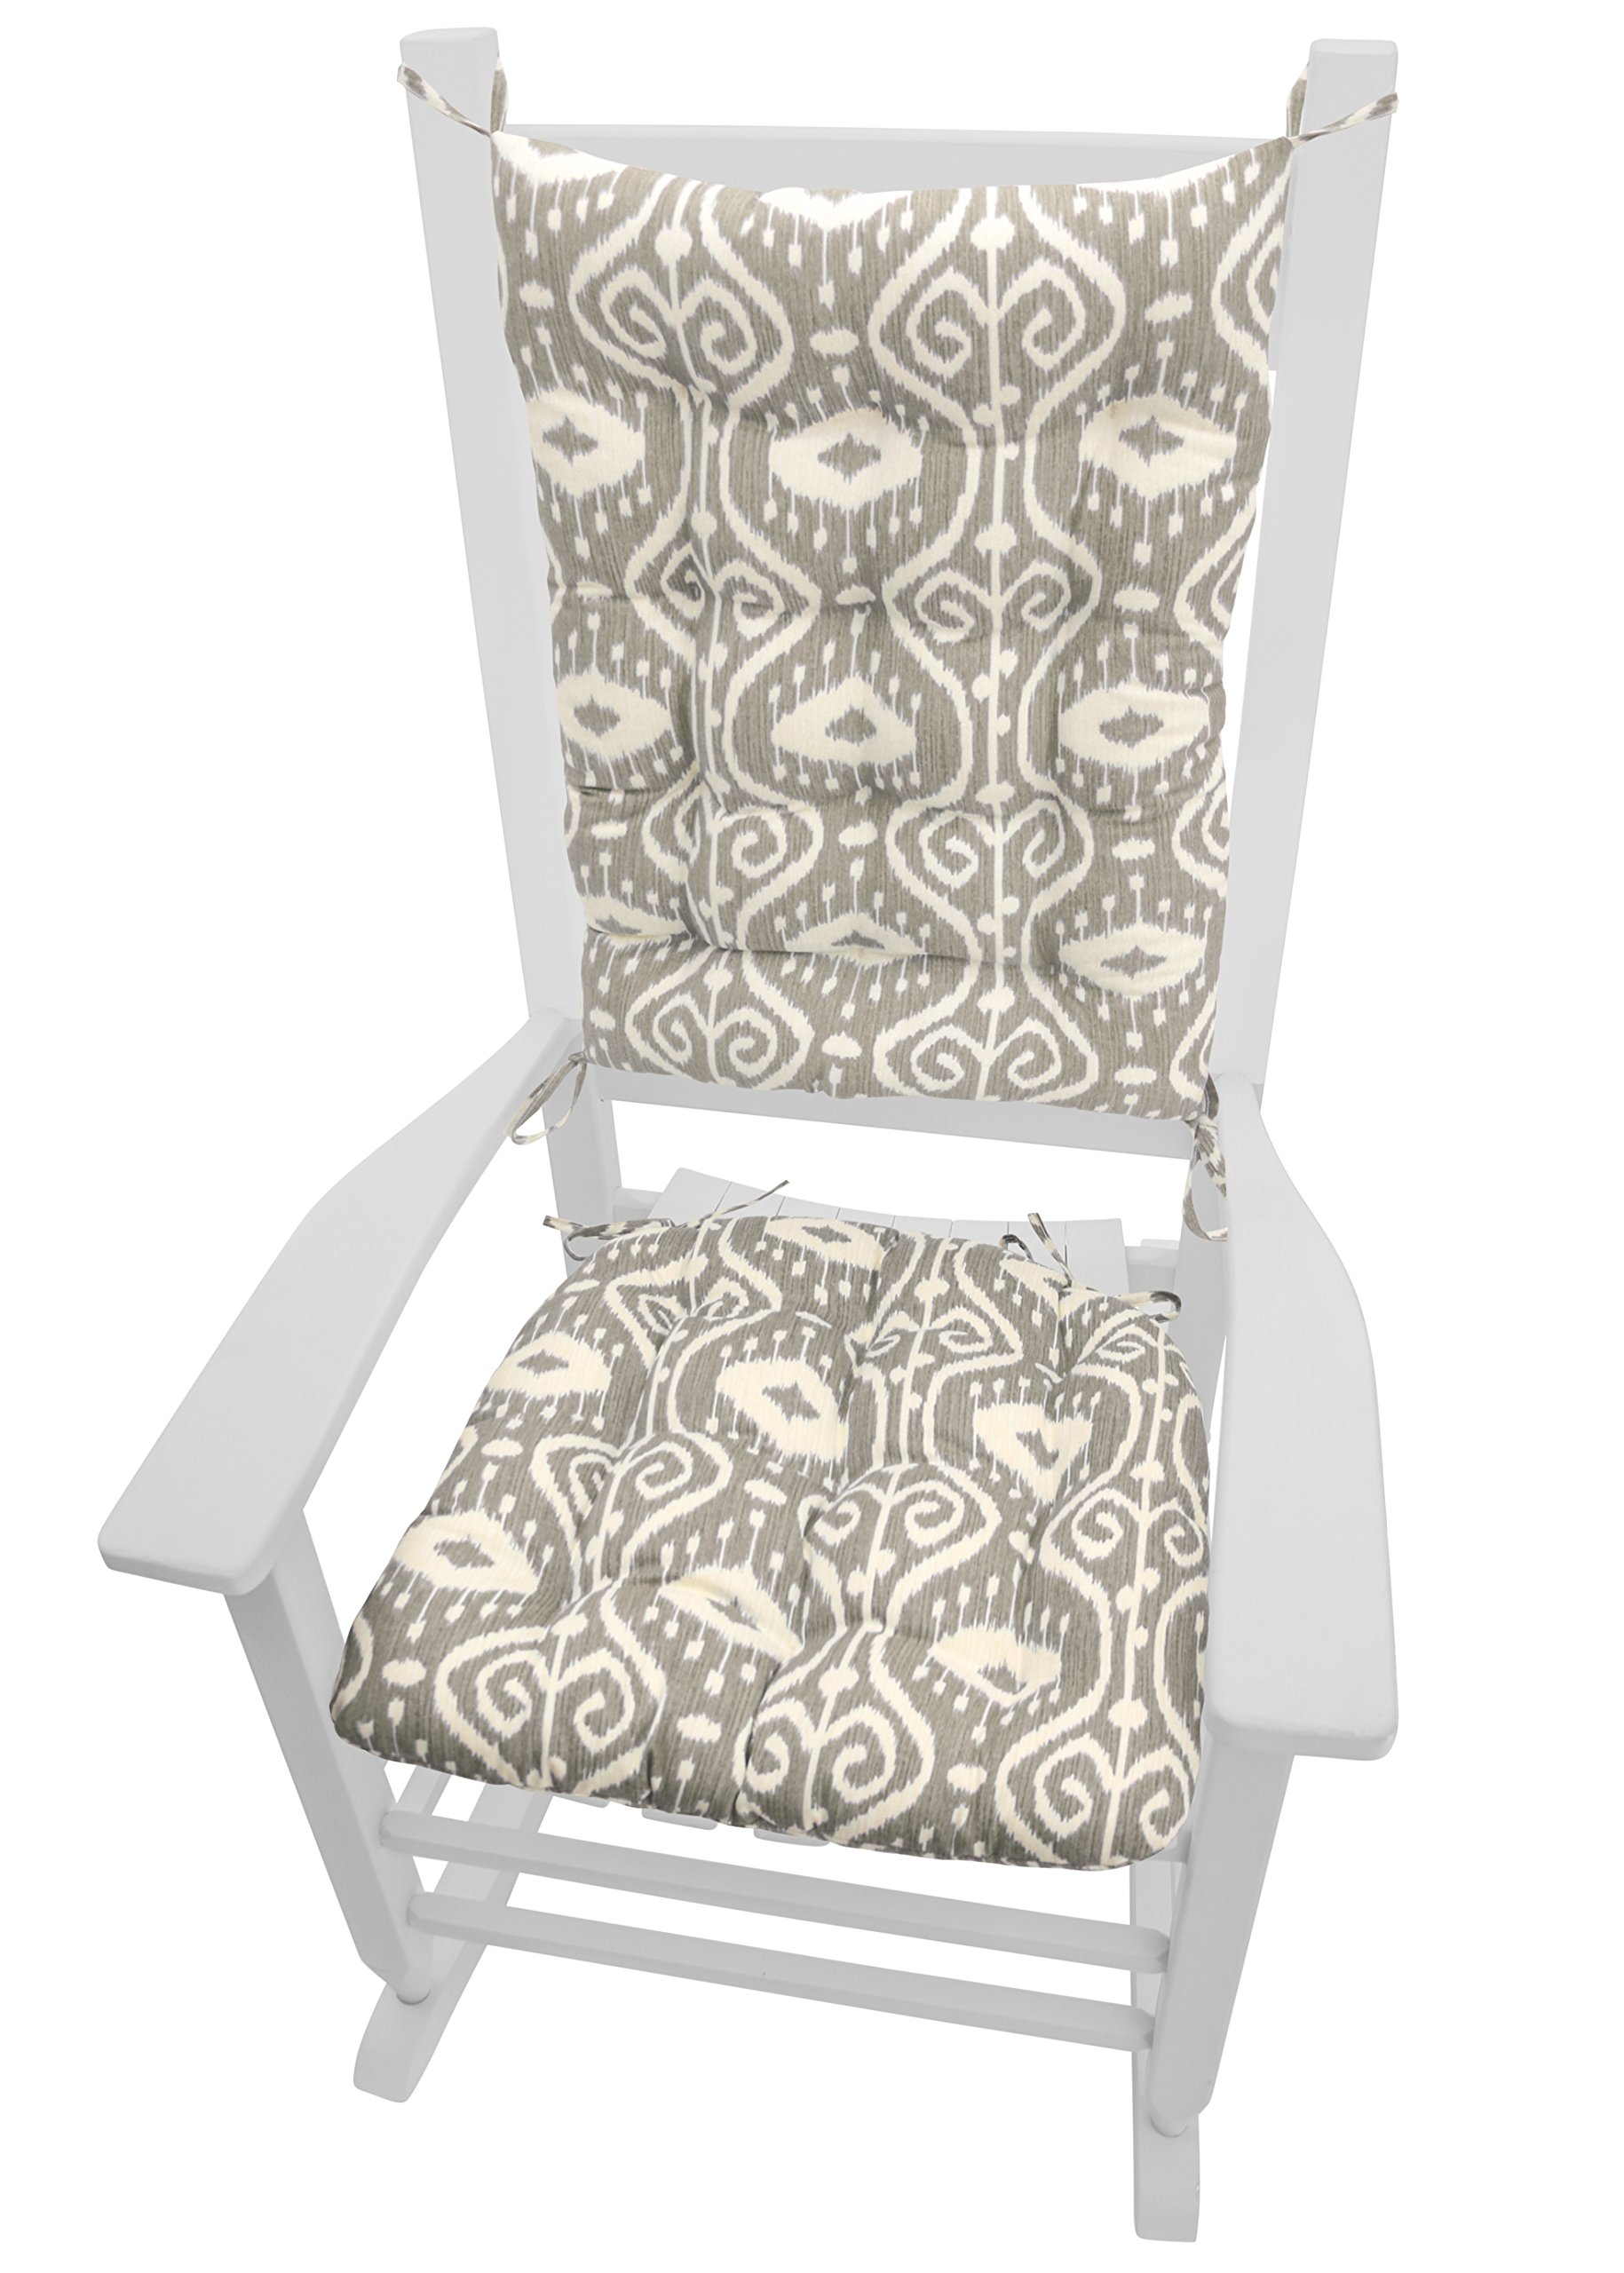 Rocking Chair Cushions - Bali Ikat Stone Grey - Reversible Seat Cushion and Back Rest with Ties - Latex Foam Fill - Made in USA (Standard)